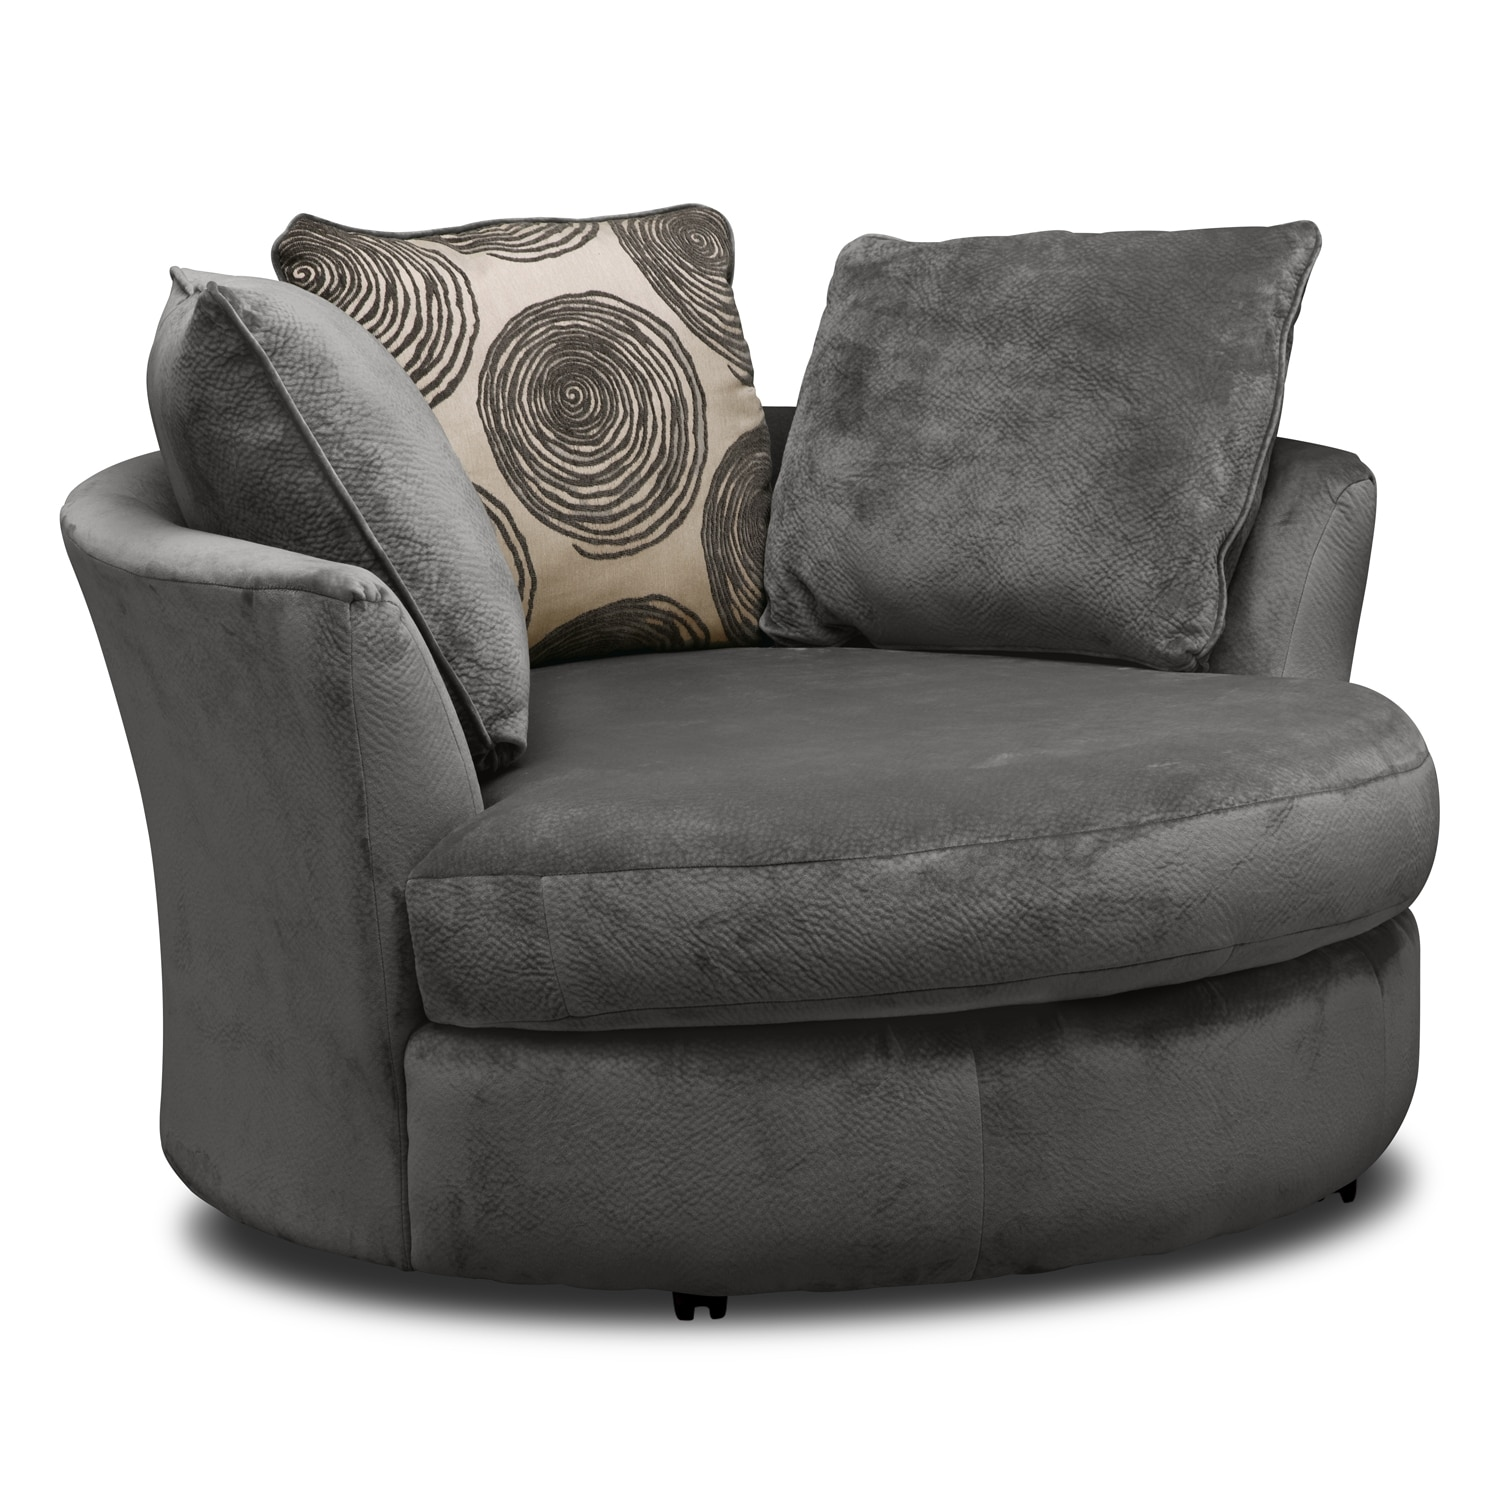 Cordelle 3 Piece Sectional And Swivel Chair Set Gray